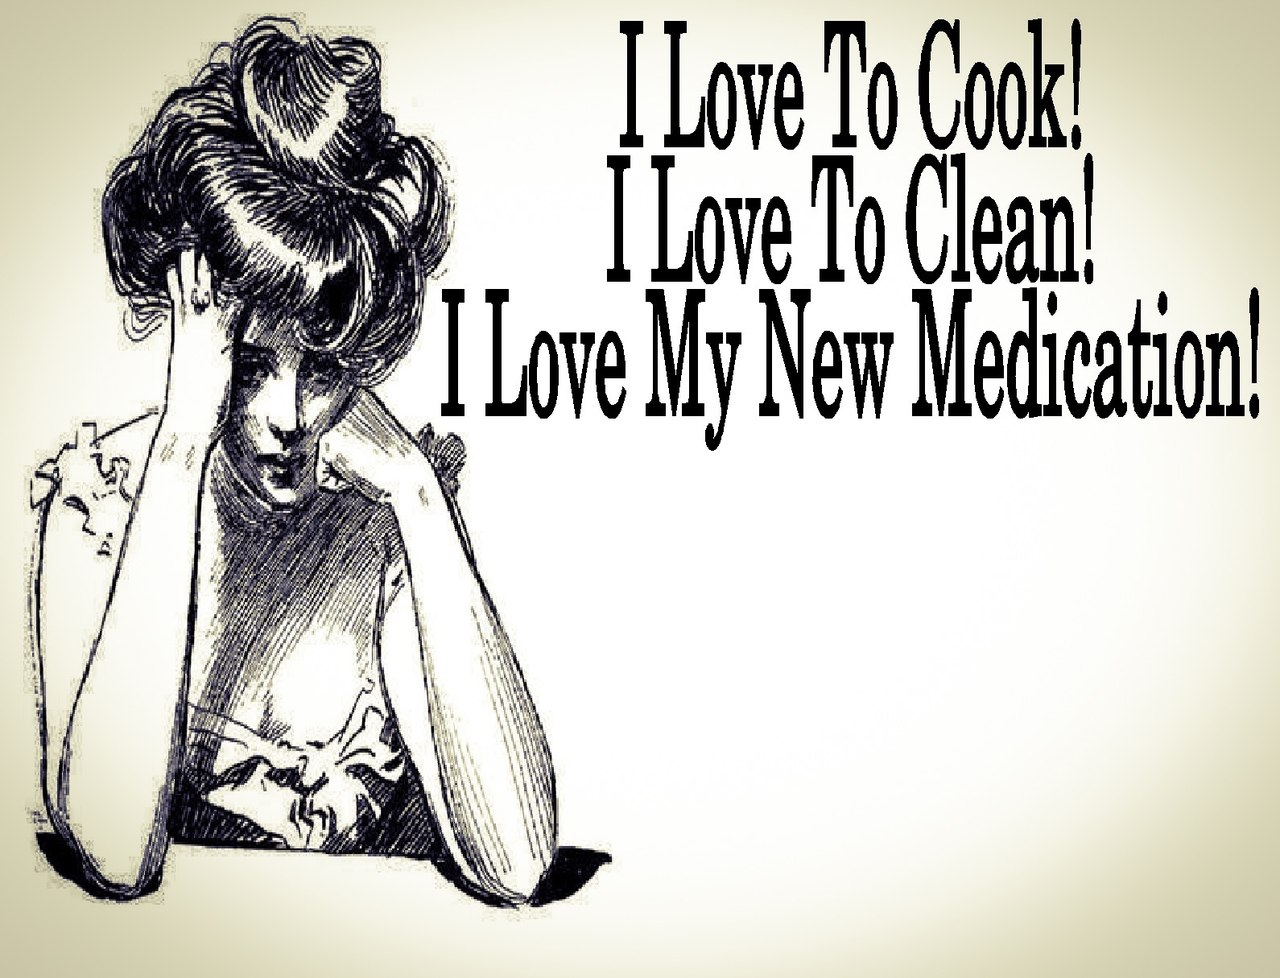 funny-pictures-cook-clean-medication